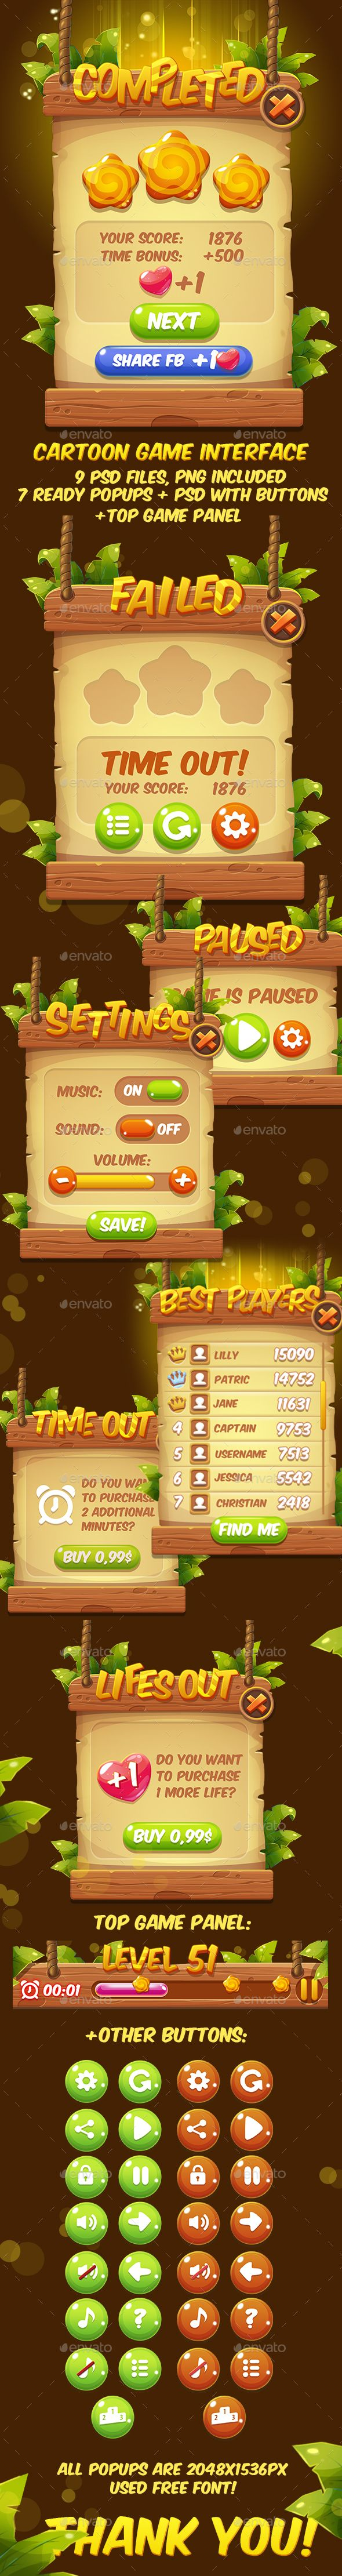 Fantasy Cartoon Game Interface — Photoshop PSD #colorful #mobile • Available here → https://graphicriver.net/item/fantasy-cartoon-game-interface/16488013?ref=pxcr